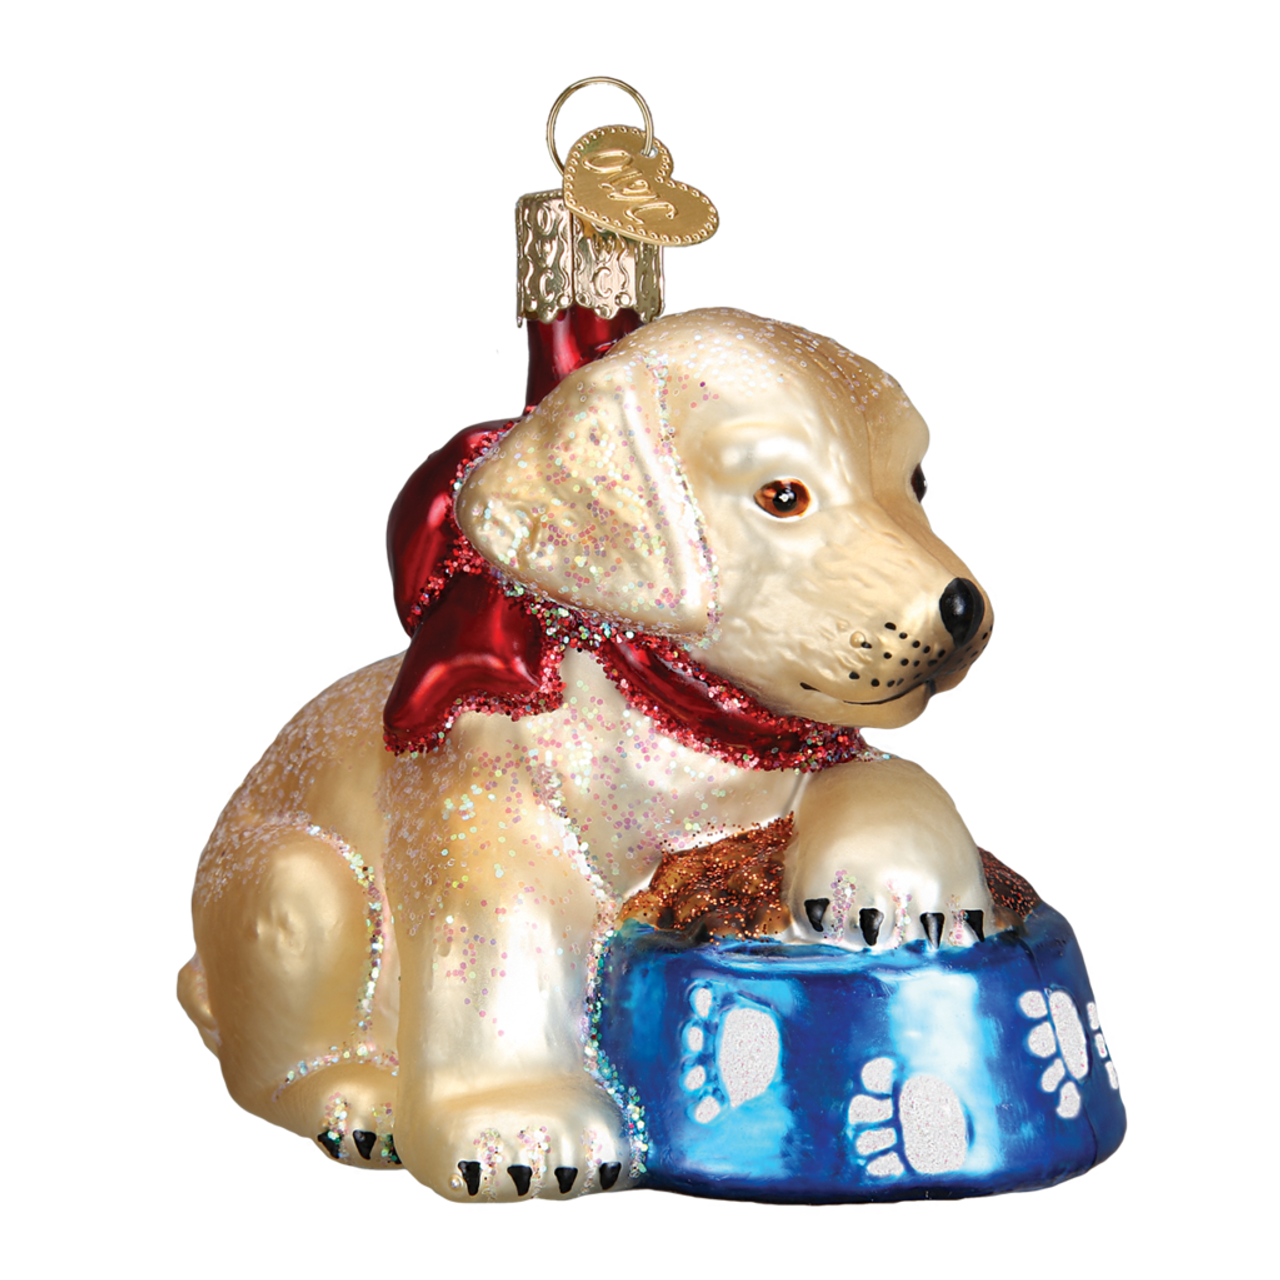 Labrador Retriever Puppy Glass Ornament By Old World Christmas